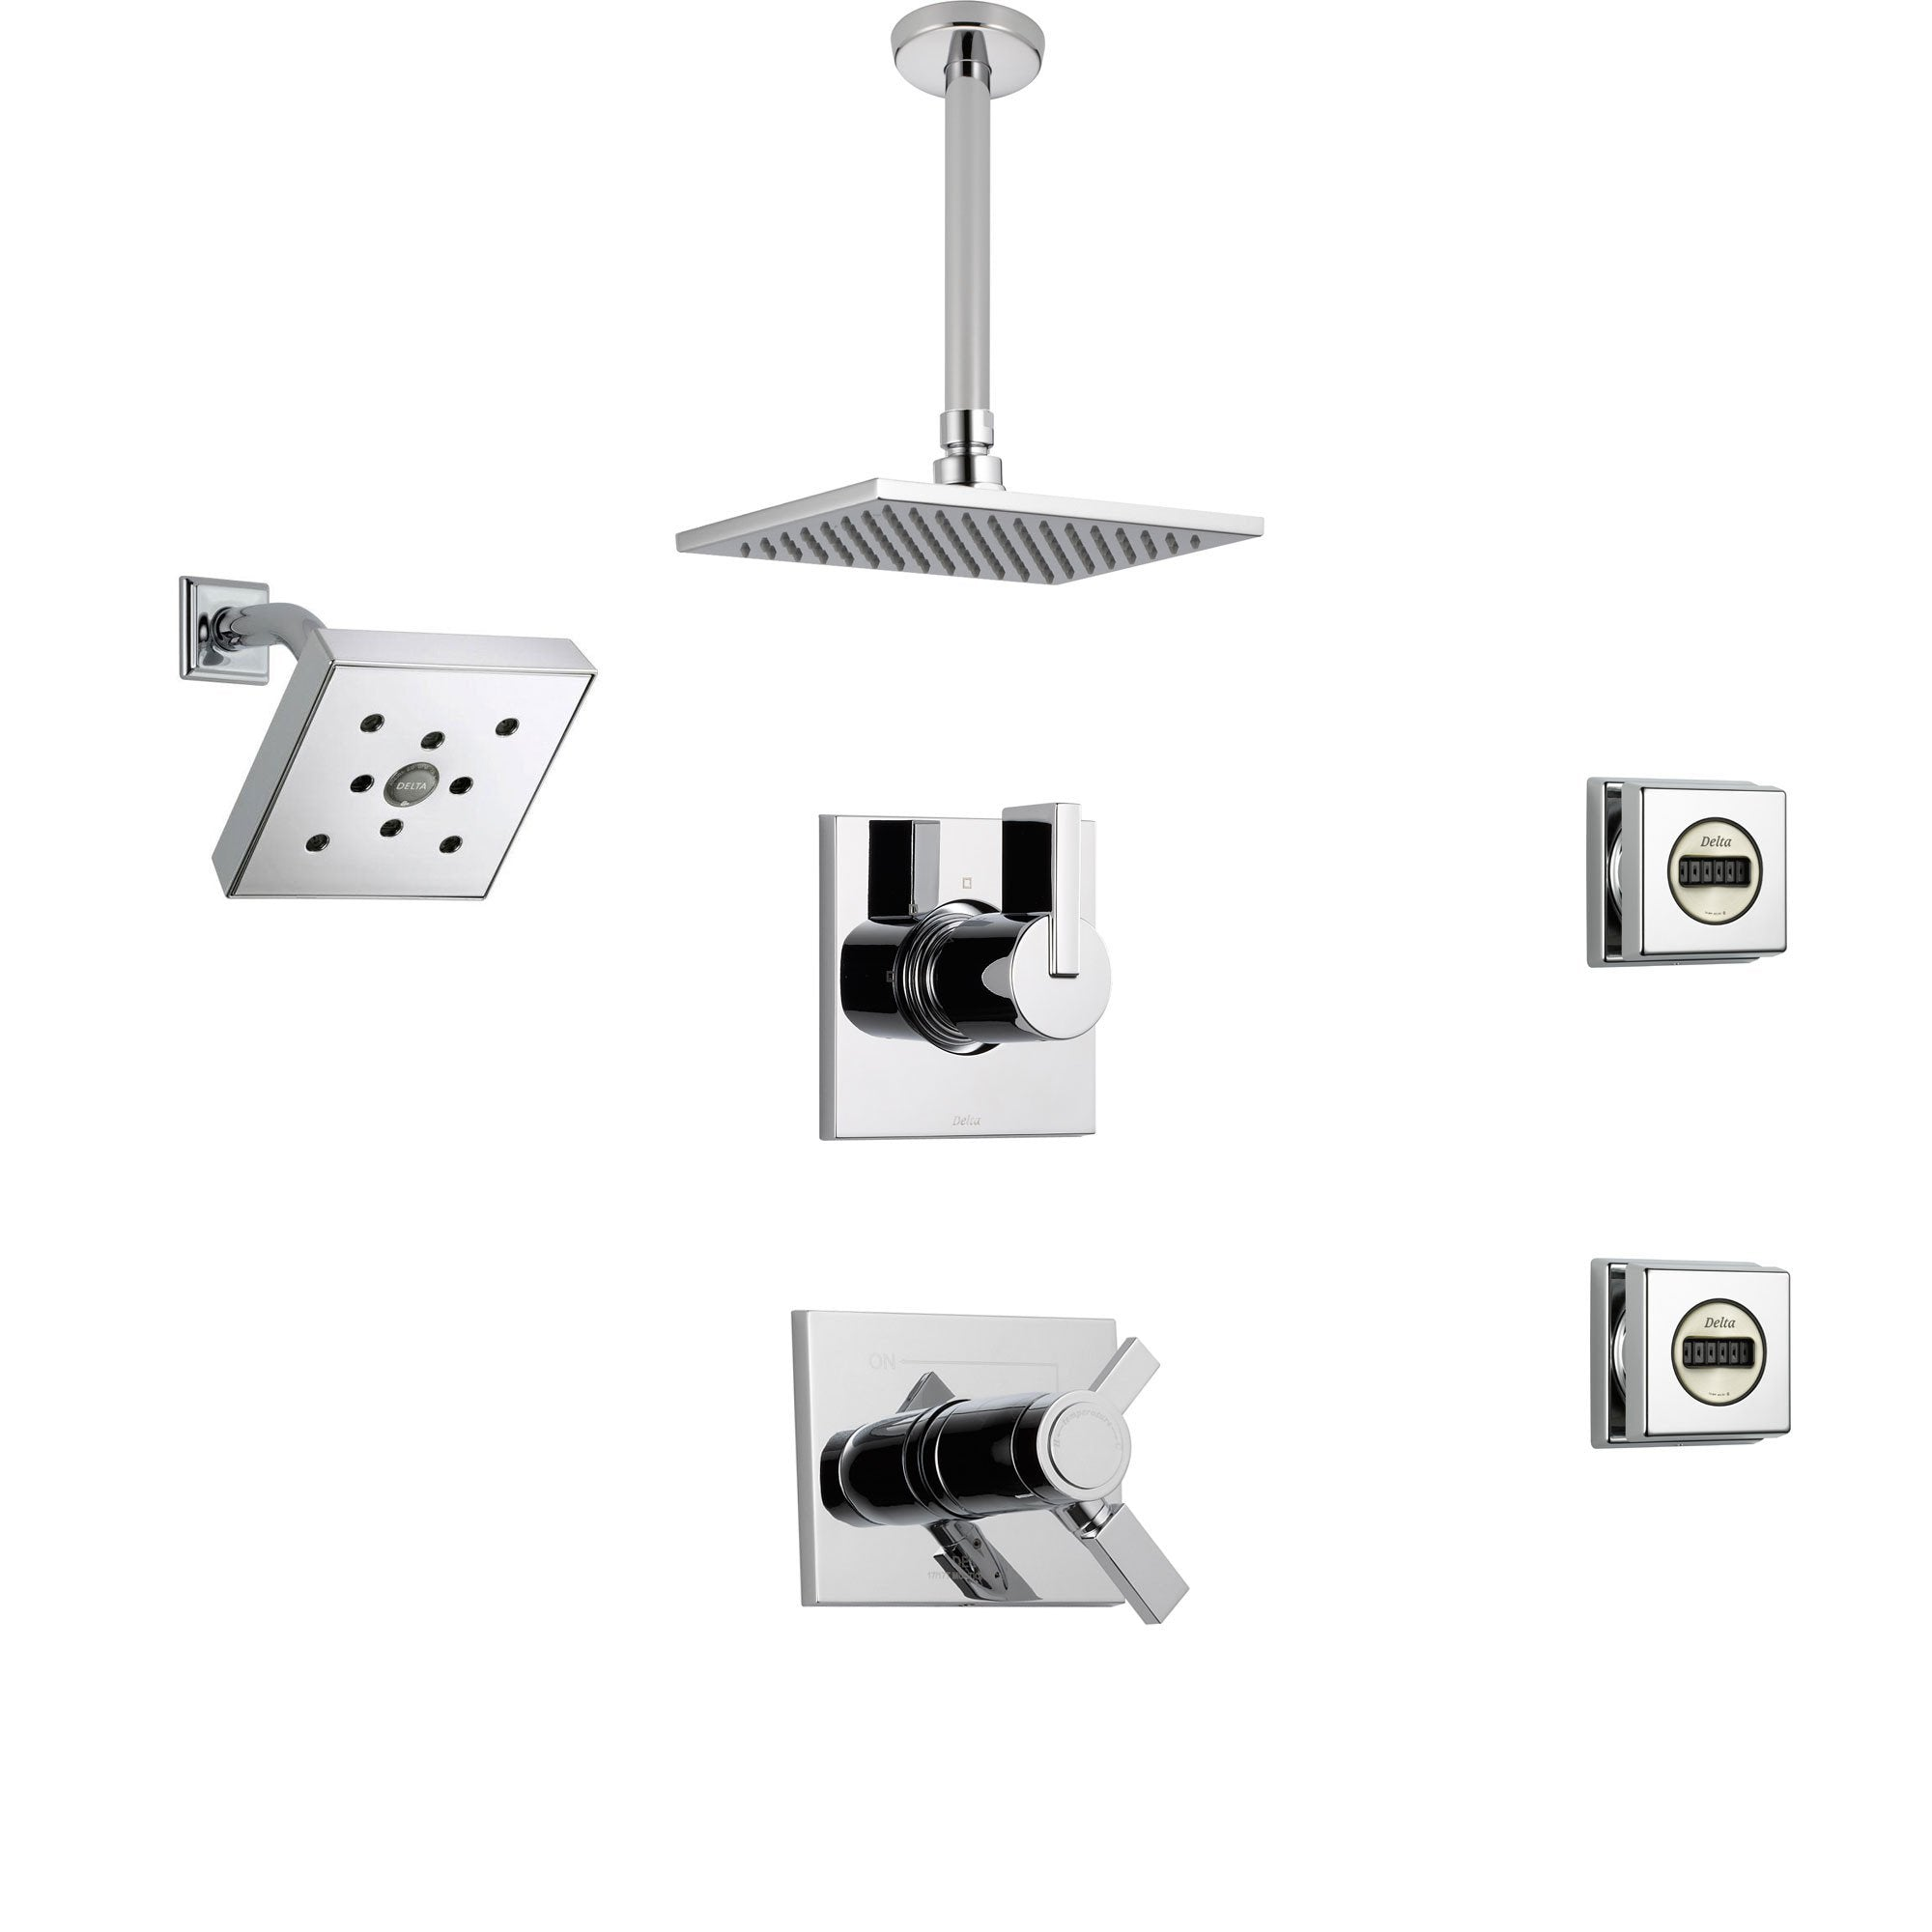 Delta Vero Chrome Shower System with Thermostatic Shower Handle, 6-setting Diverter, Square Ceiling Mount Showerhead, Wall Mount Modern Showerhead, and 2 Body Sprays SS17T5395